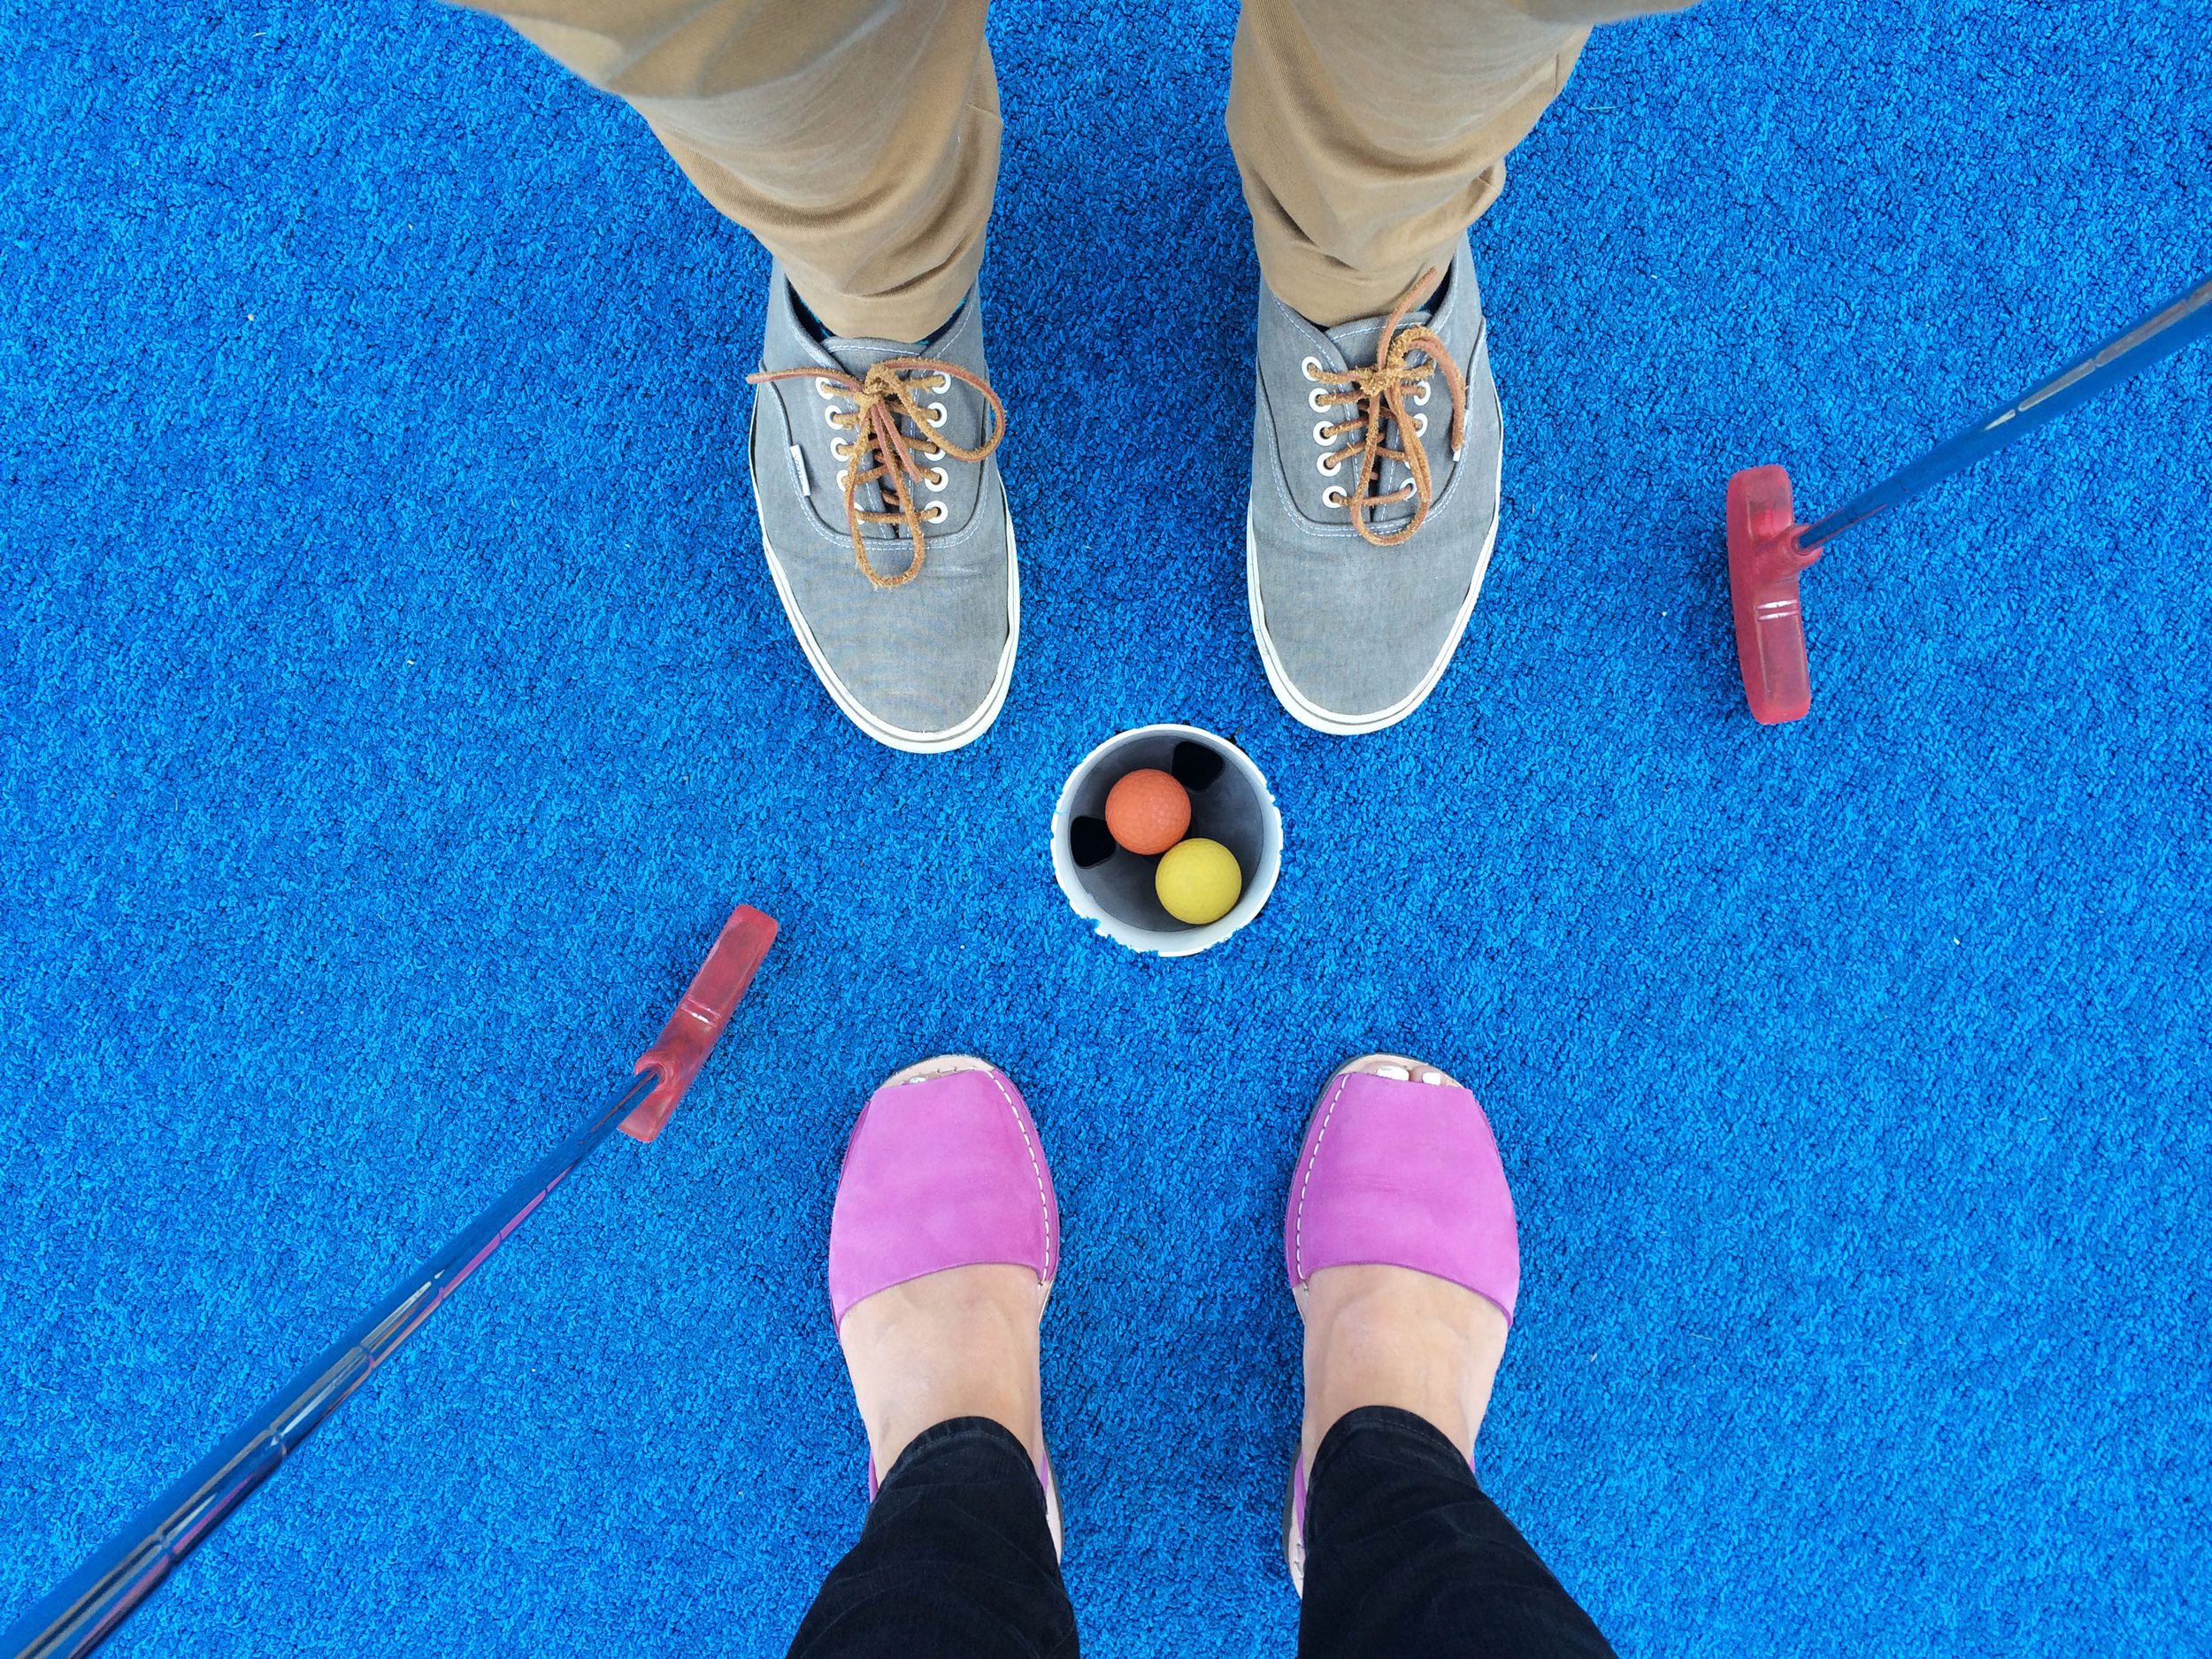 mini_golf_feet.jpg